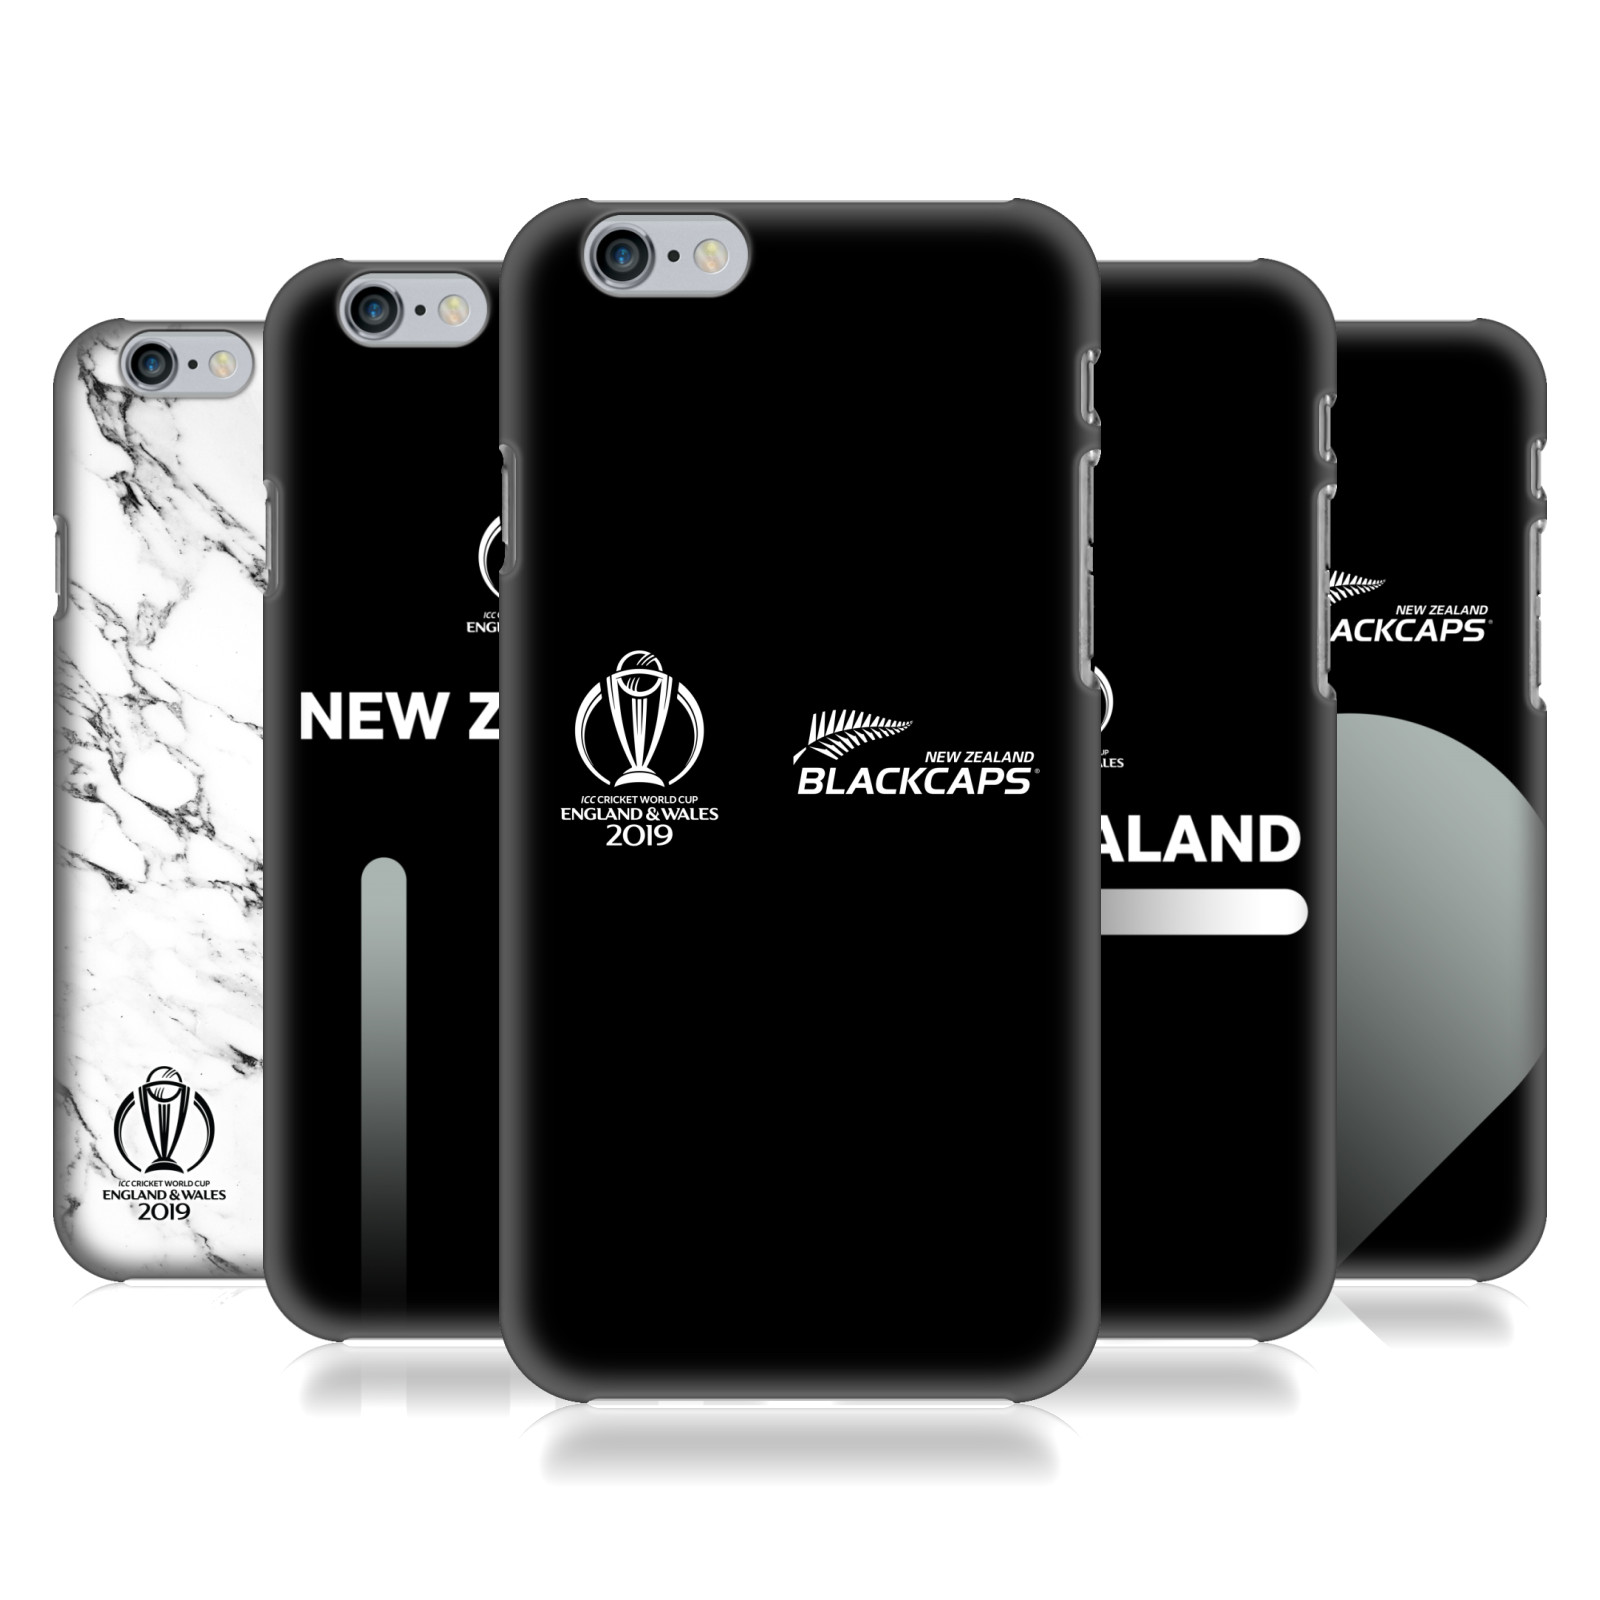 ICC New Zealand Phone and Tablet cases